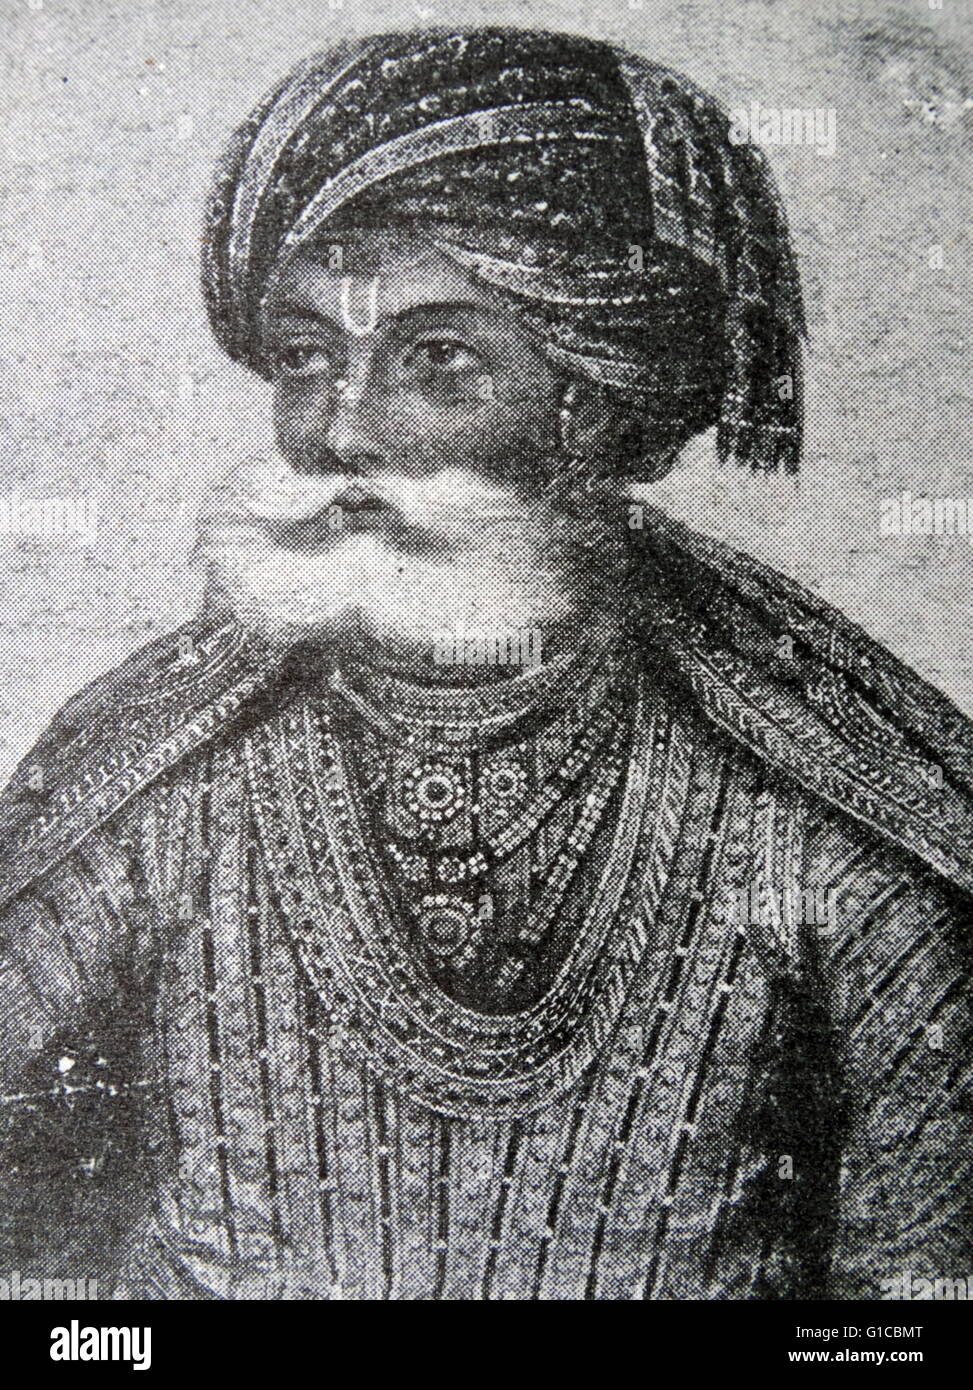 Portrait of Akbar the Great (1542-1605) Mughal Emperor. Dated 17th Century - Stock Image